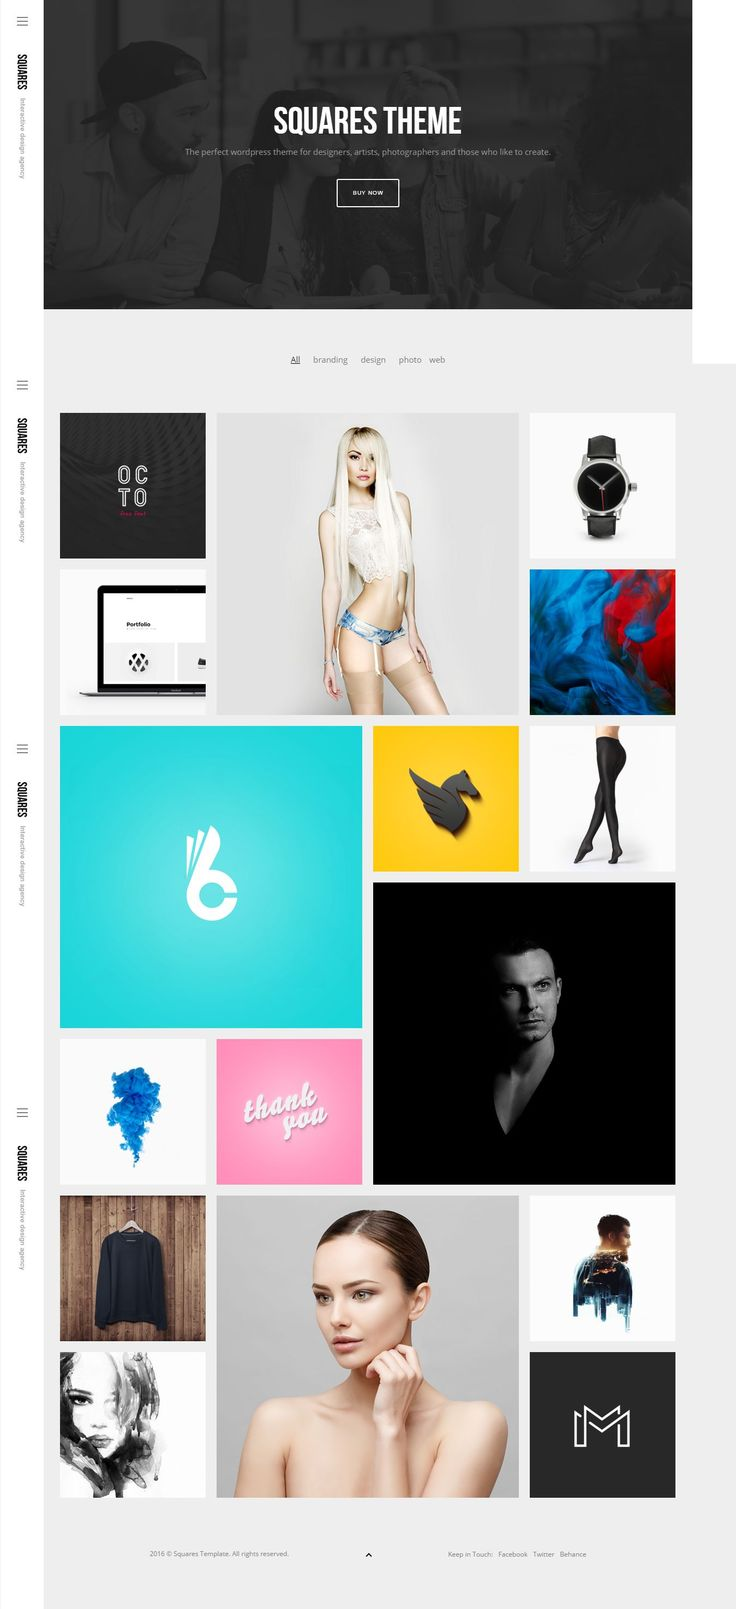 The perfect WordPress theme for designers, artists, photographers and those who like to create. #Portfolio #Website #Template